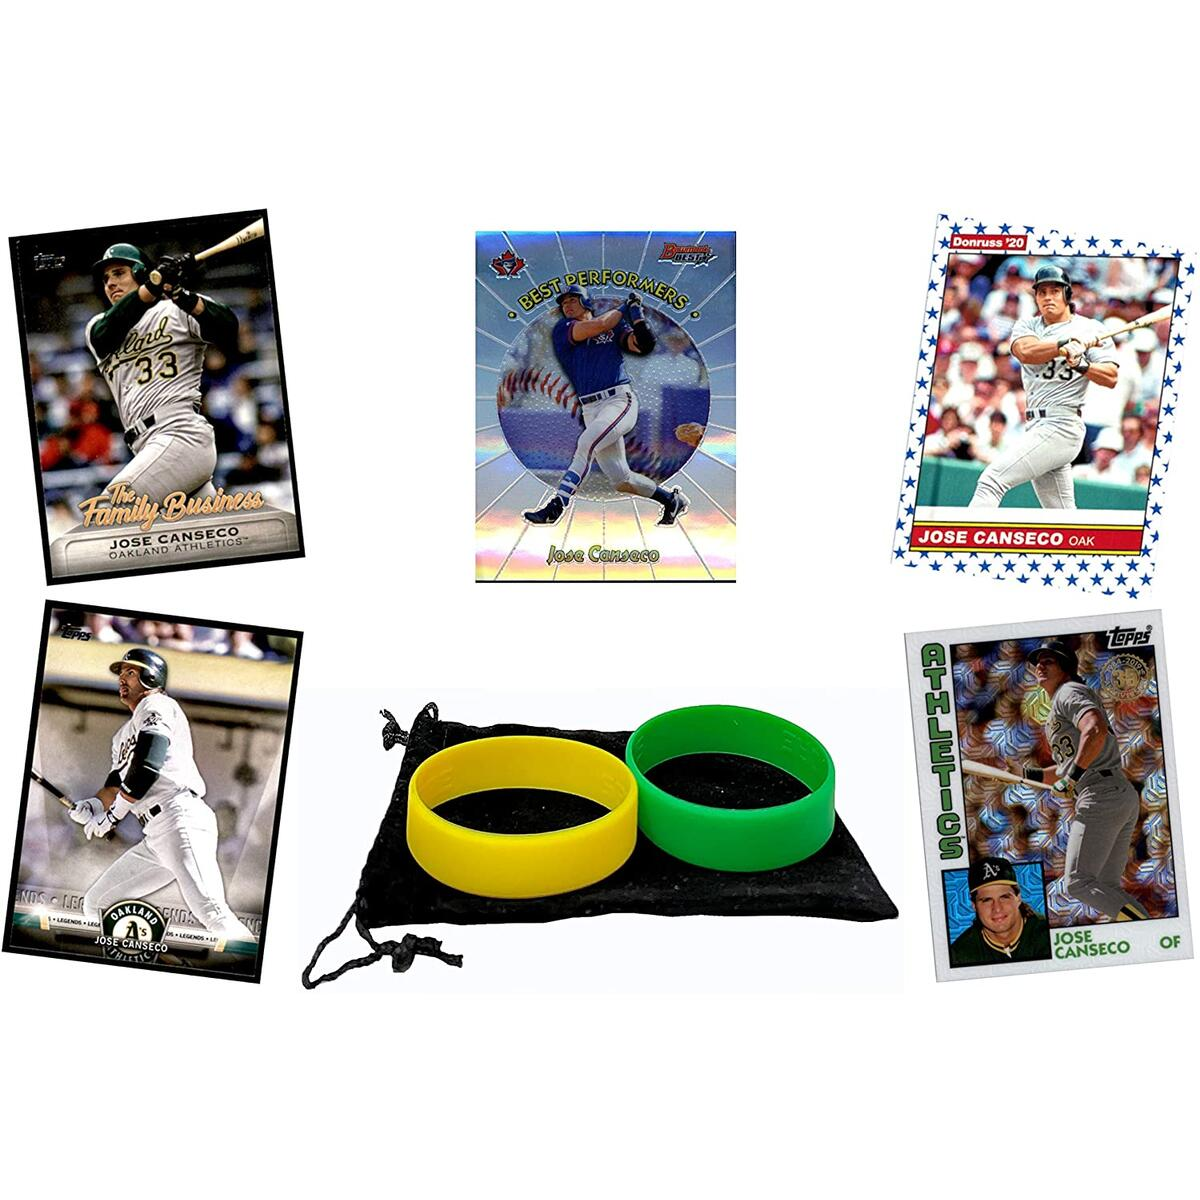 Jose Canseco Baseball Cards (5) ASSORTED Oakland Athletics Trading Card and Wristbands Gift Bundle